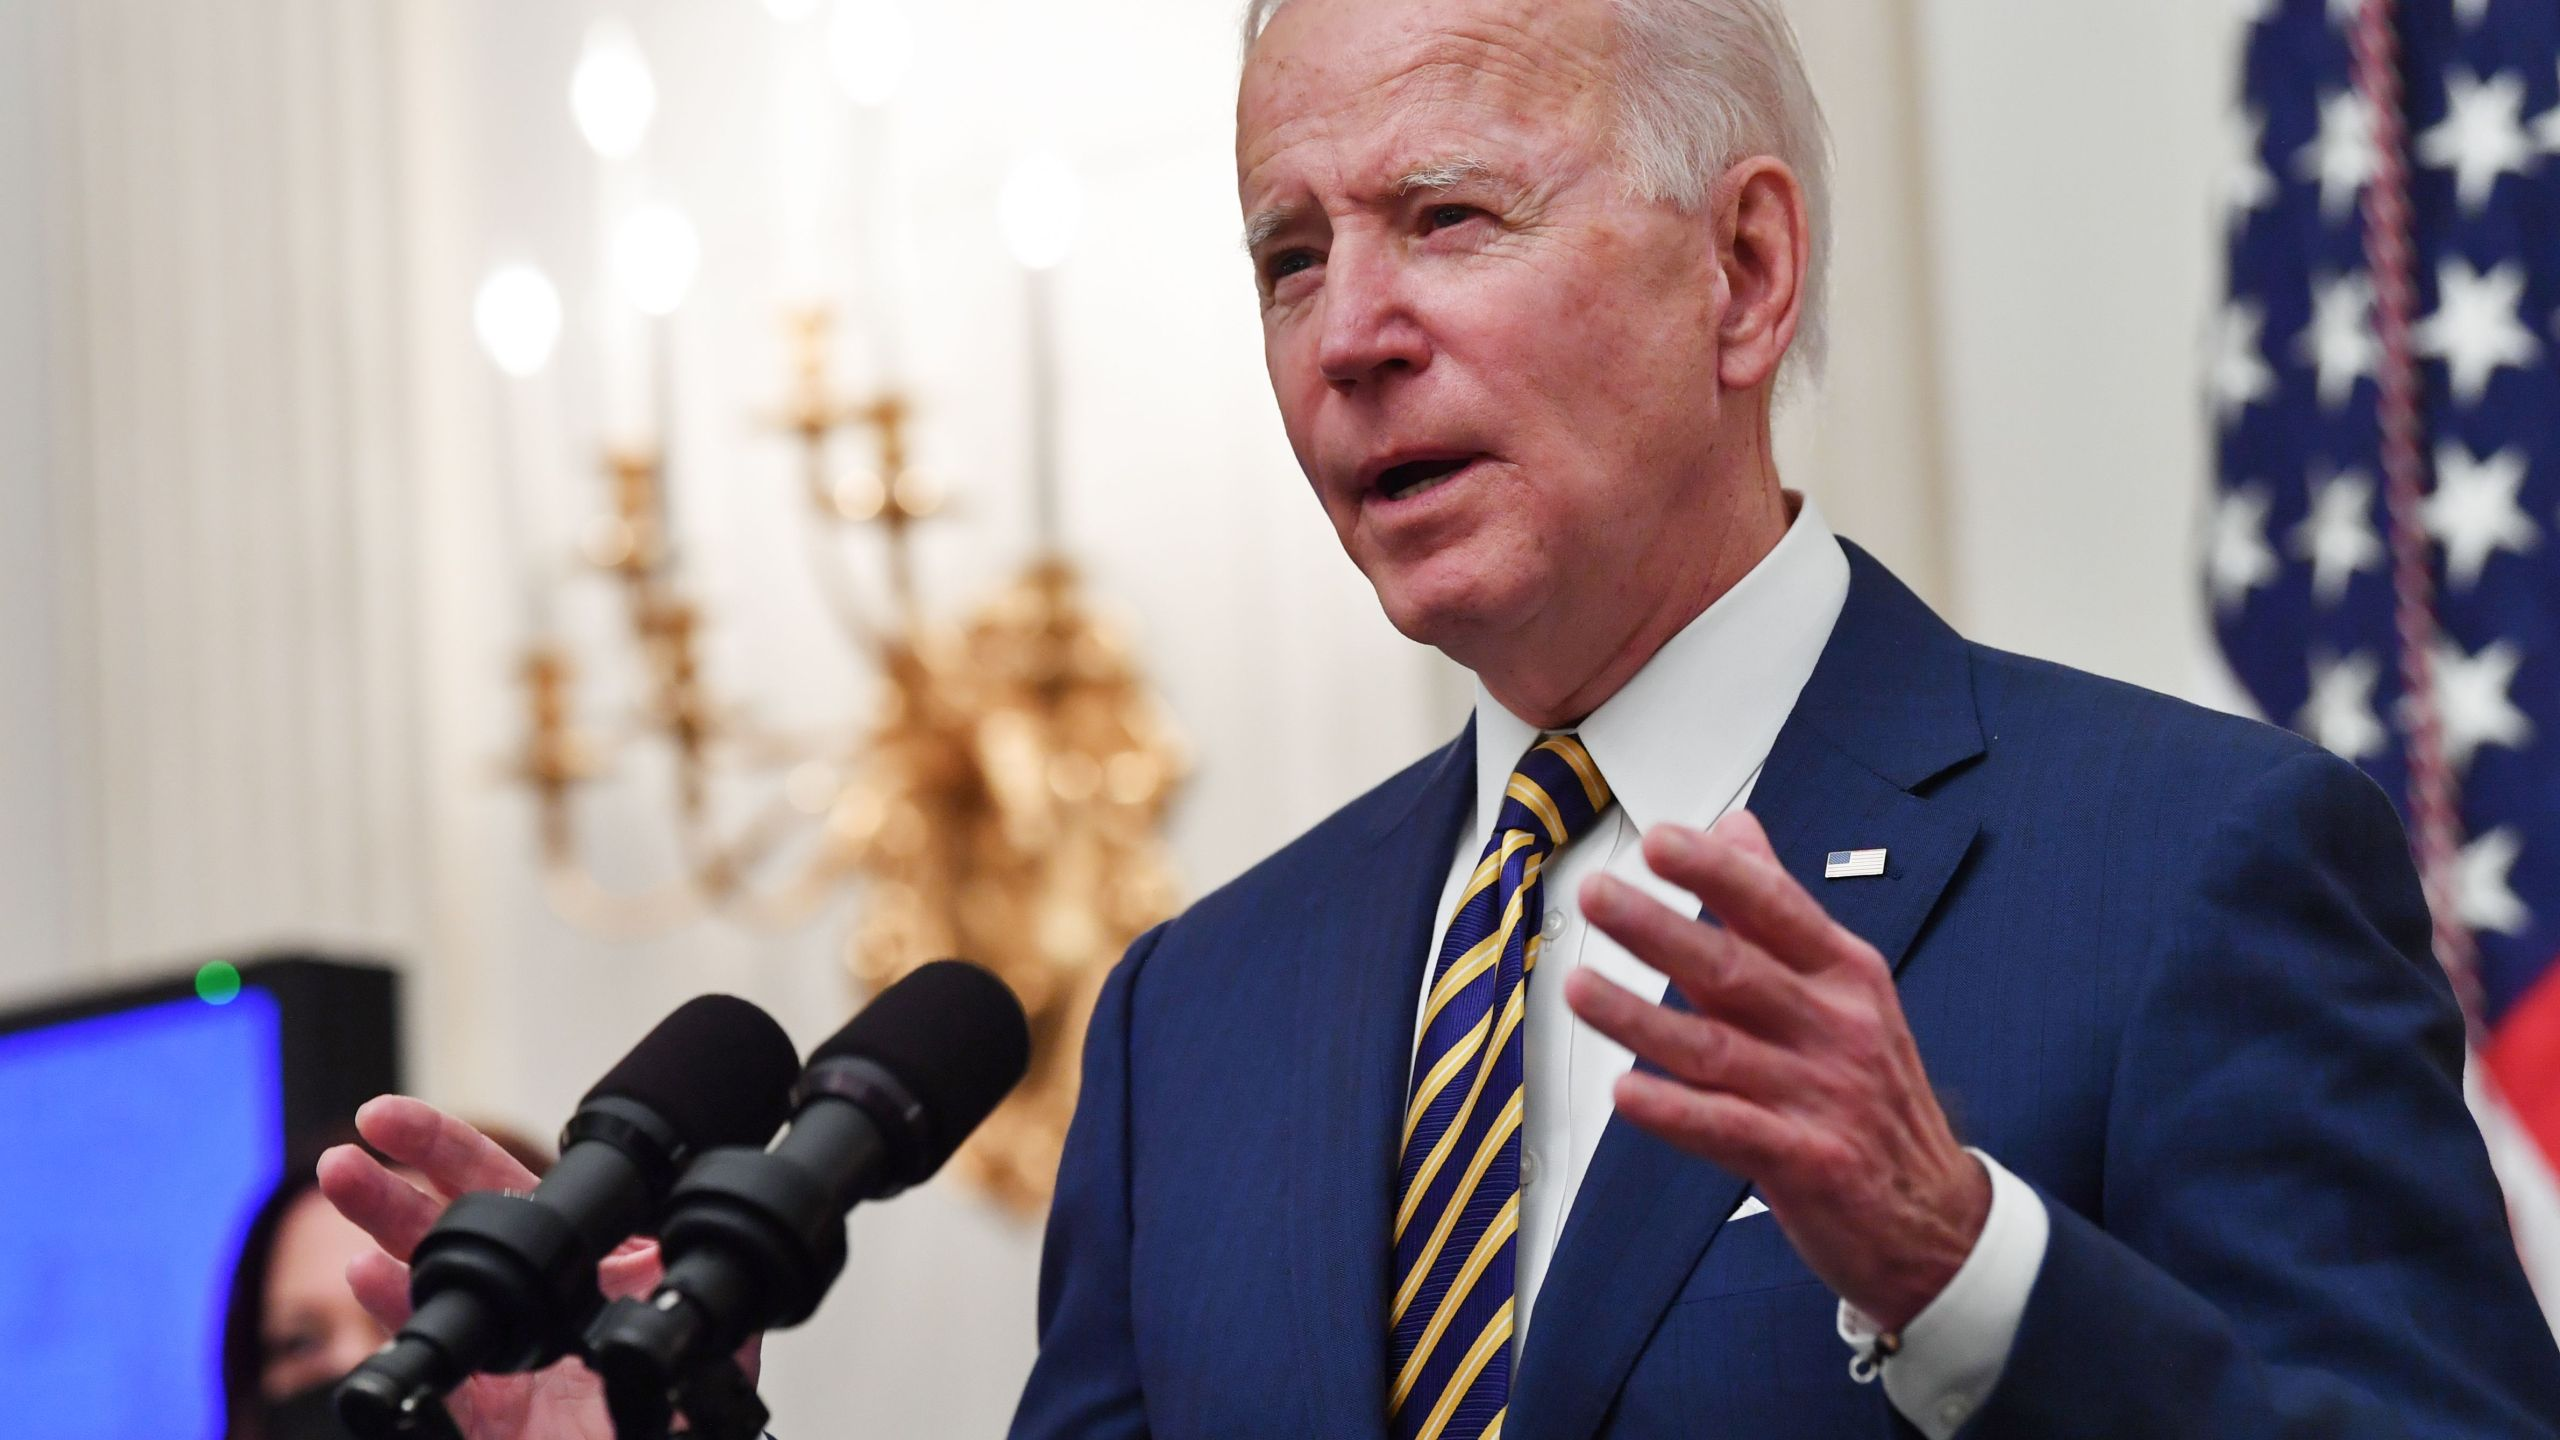 US President Joe Biden speaks about the Covid-19 response before signing executive orders for economic relief to Covid-hit families and businesses in the State Dining Room of the White House in Washington, DC, on January 22, 2021. (Nicholas Kamm/AFP via Getty Images)